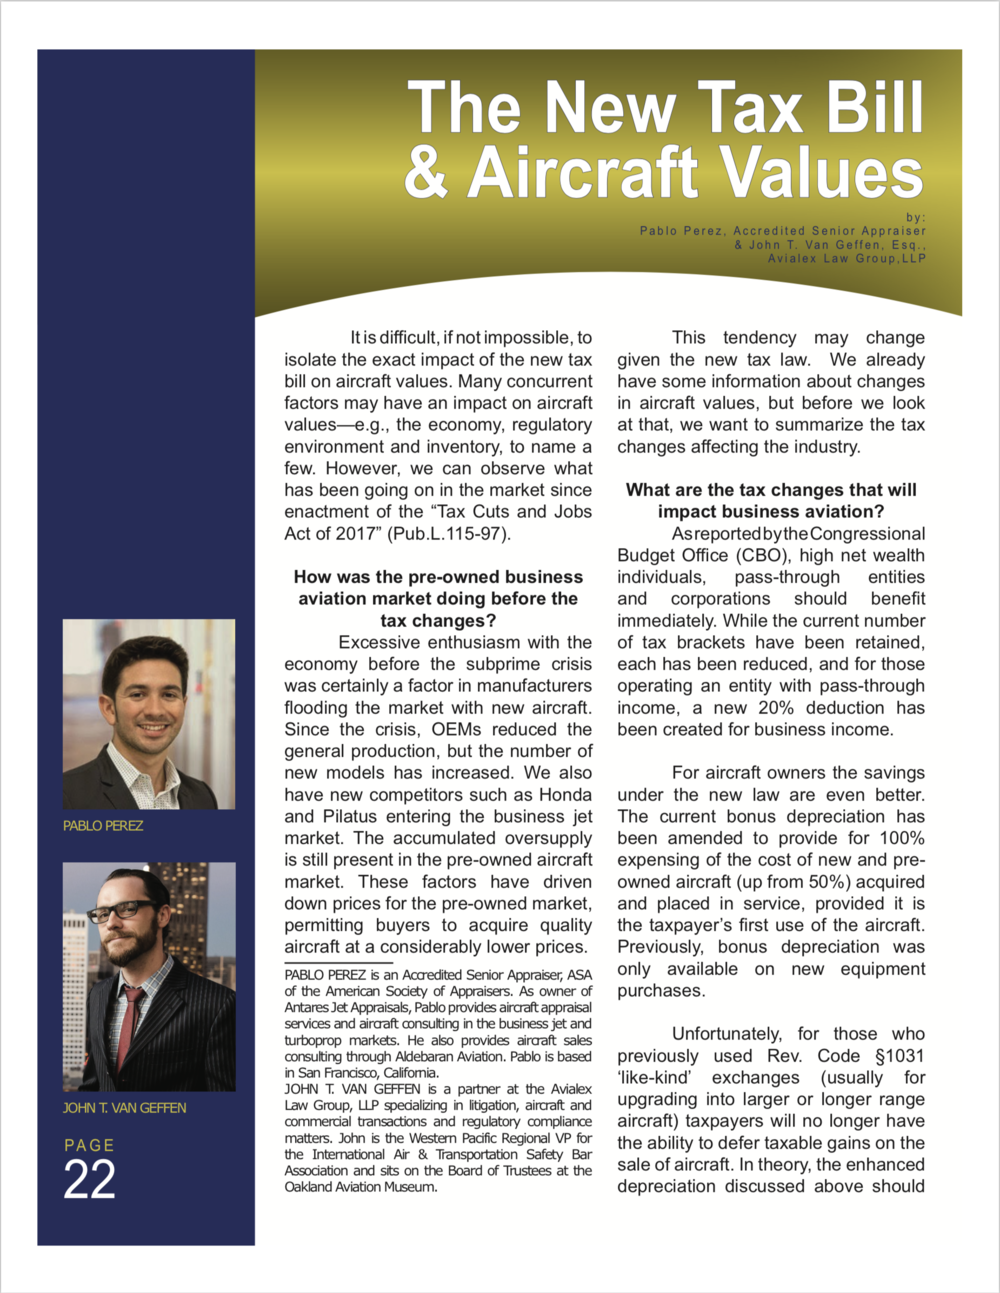 Pablo Perez, Accredited Senior Appraiser, and John T. Van Geffen, partner, Avialex Law Group, authors of article on aircraft valuations and the new tax bill.